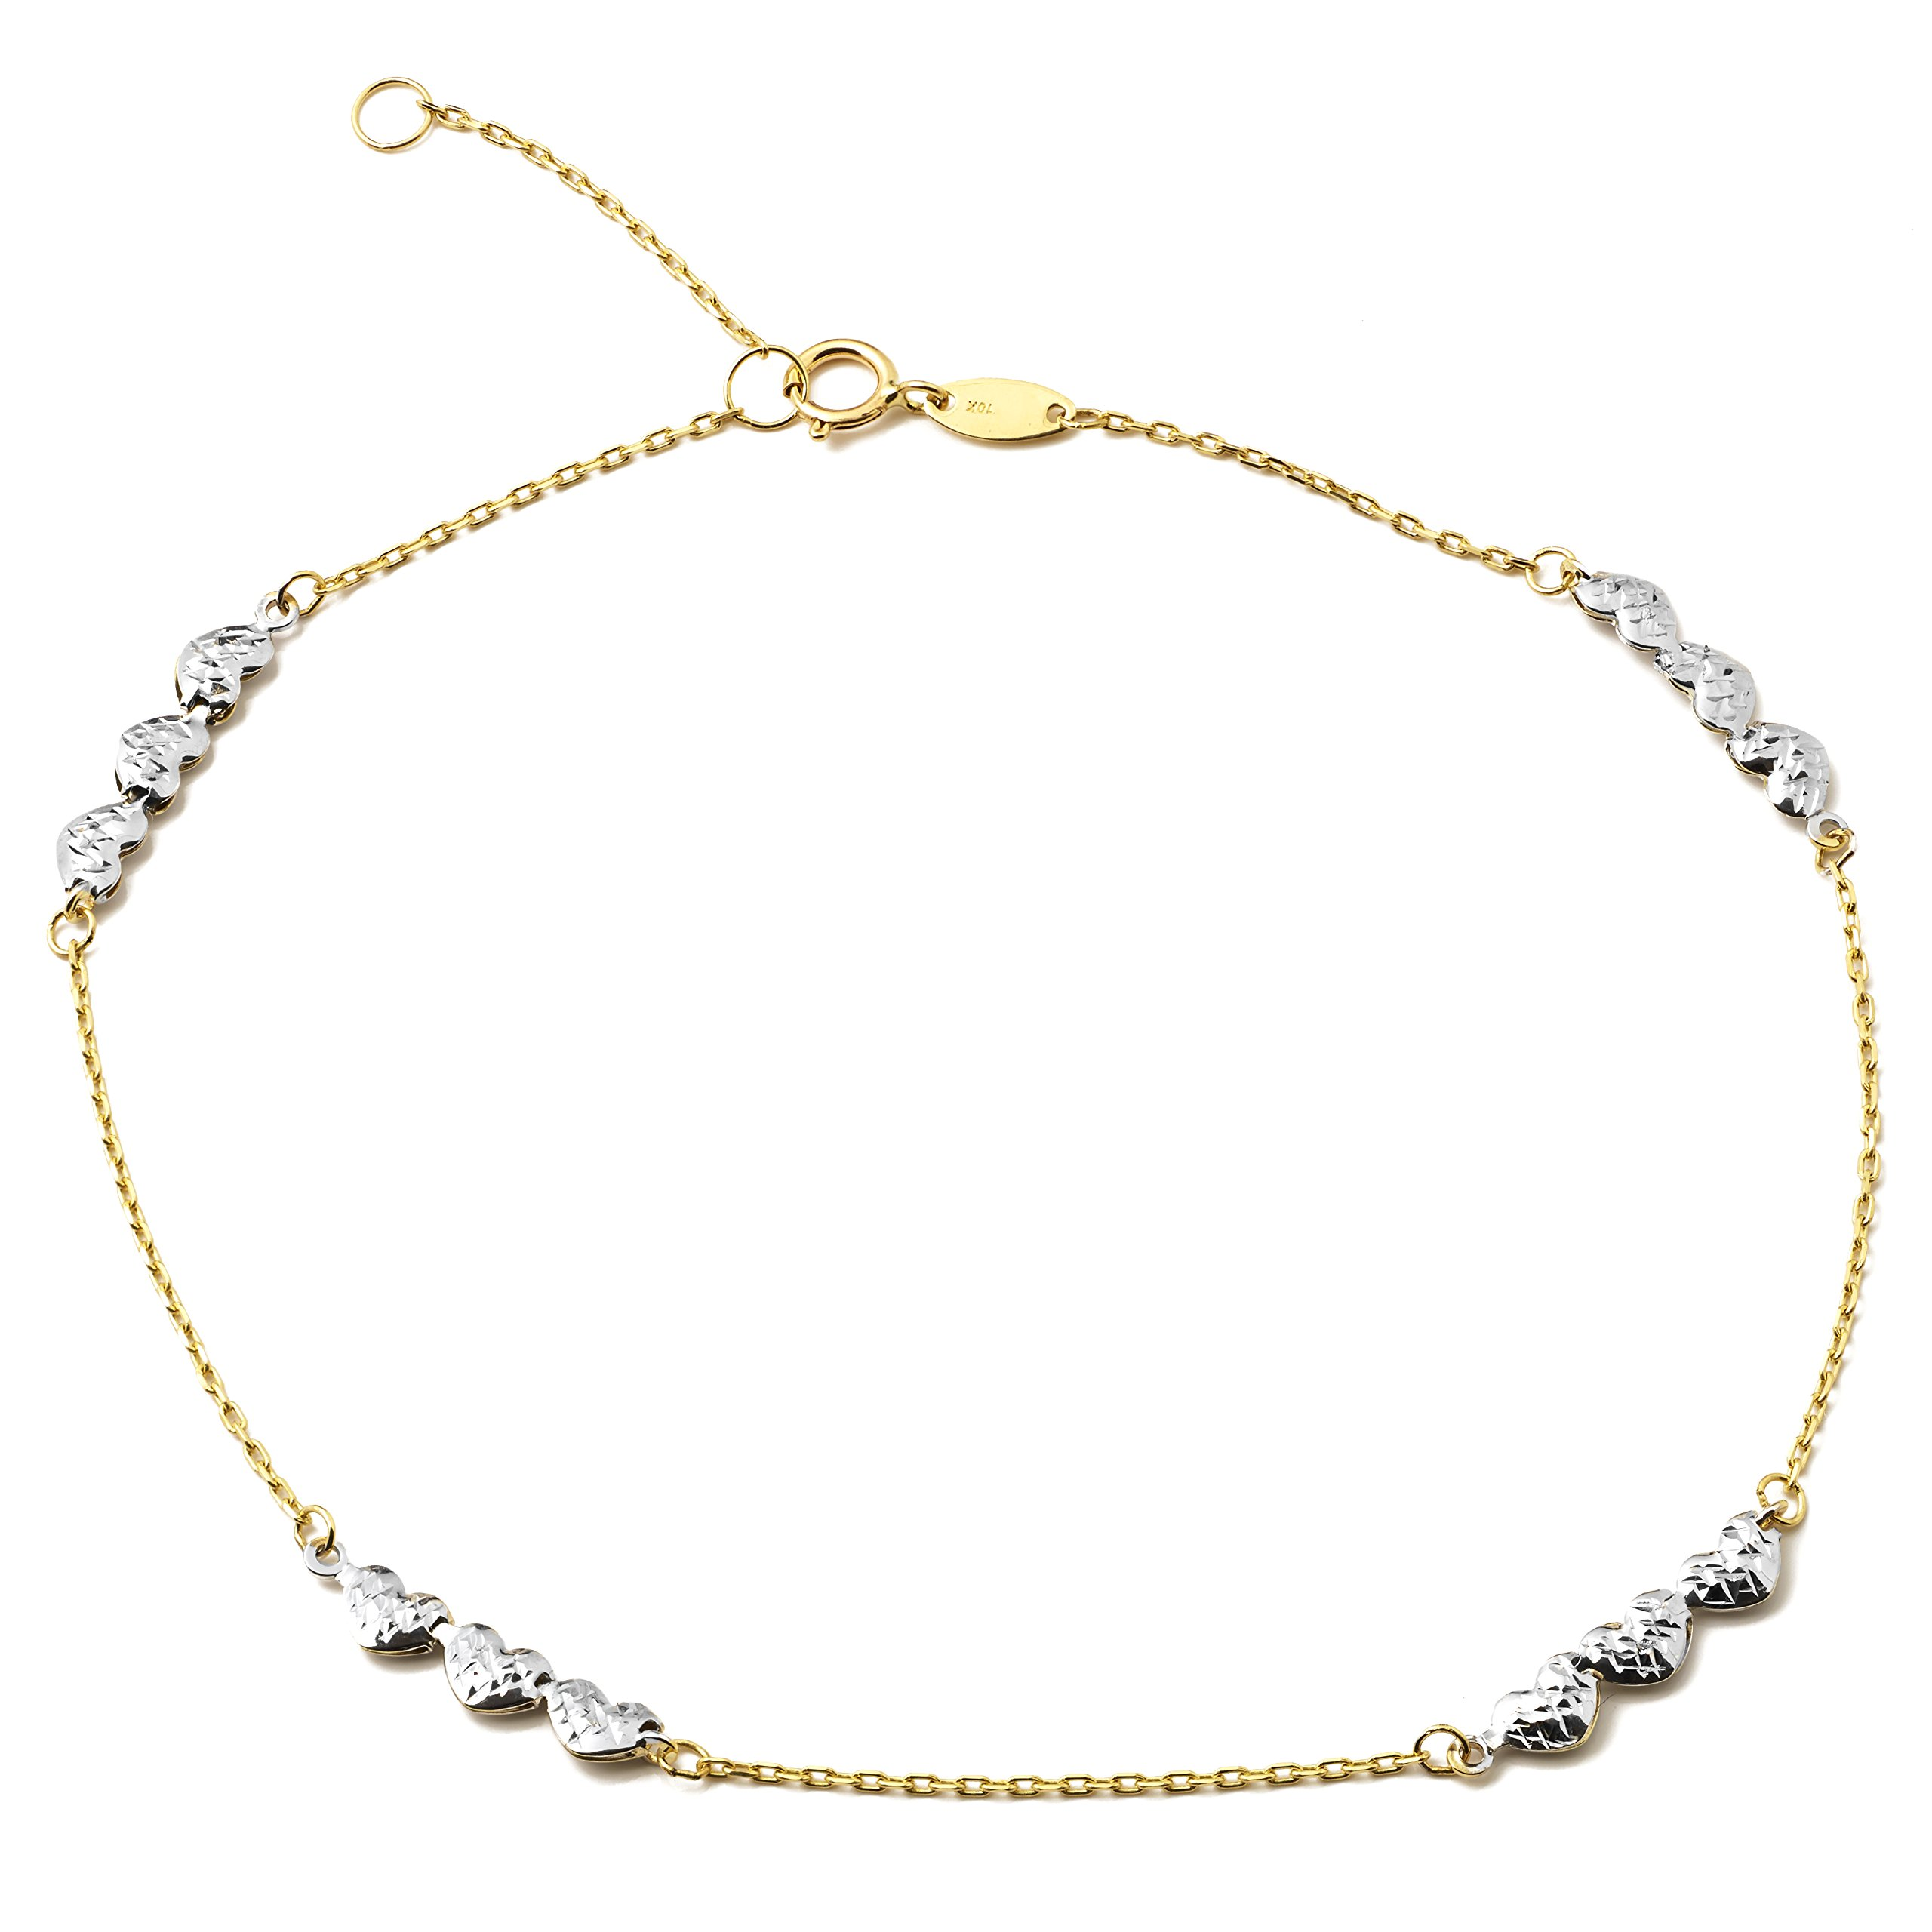 LOVEBLING 10K Yellow Gold .5mm Rolo Chain with 3 White Gold Diamond Cut Heart Charms Anklet Adjustable 9'' to 10'' (#49)